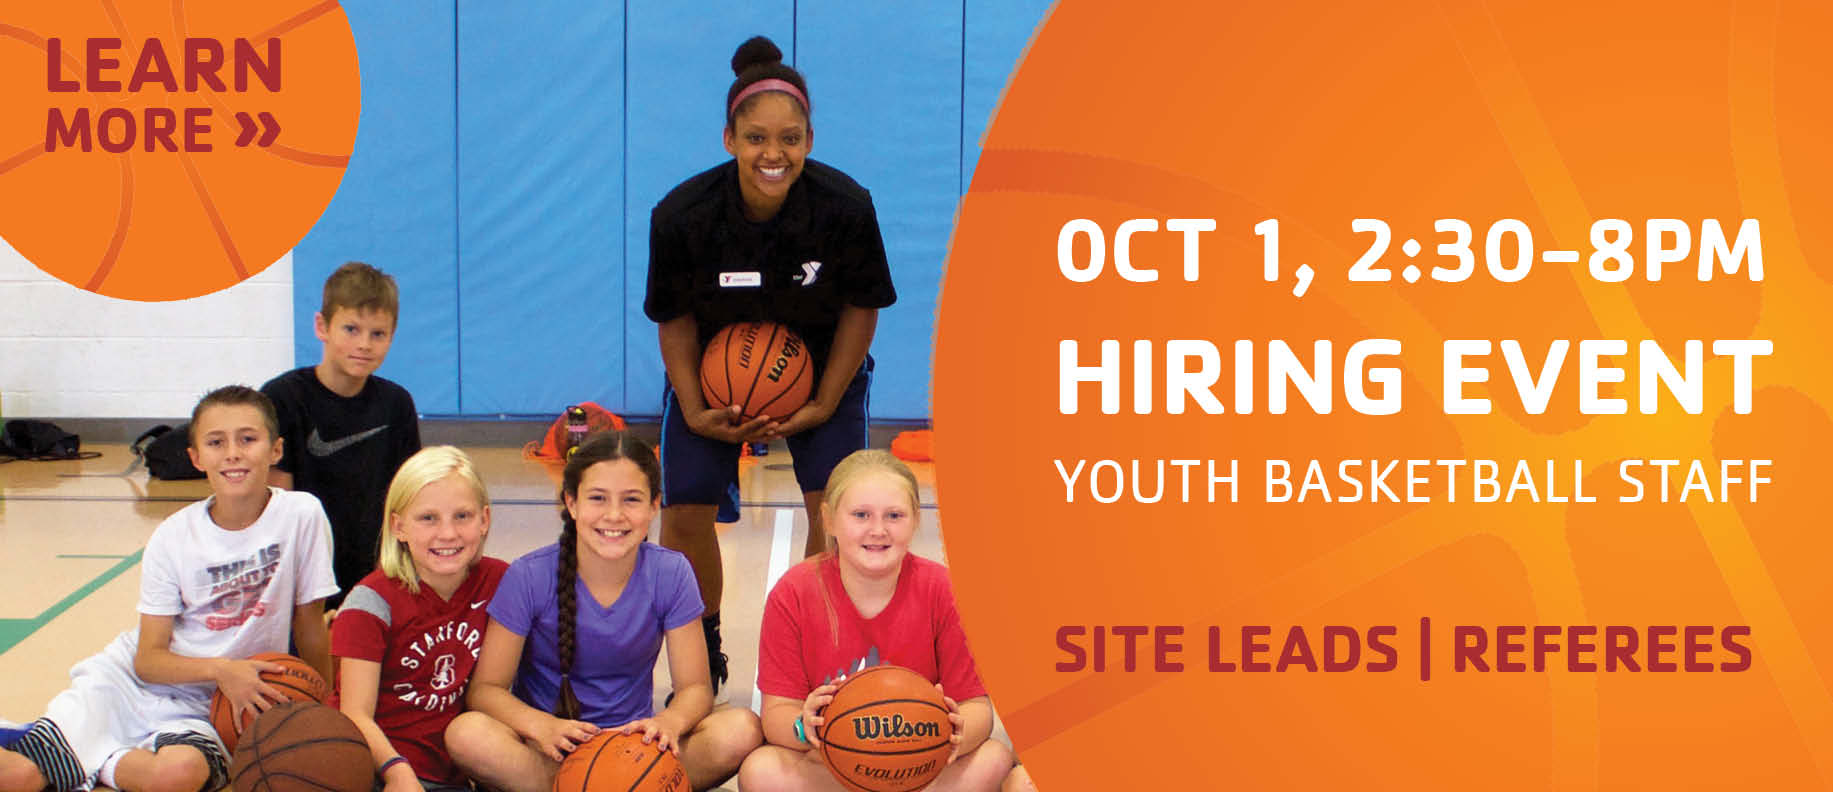 Treasure Valley Family YMCA - For Youth Development  For